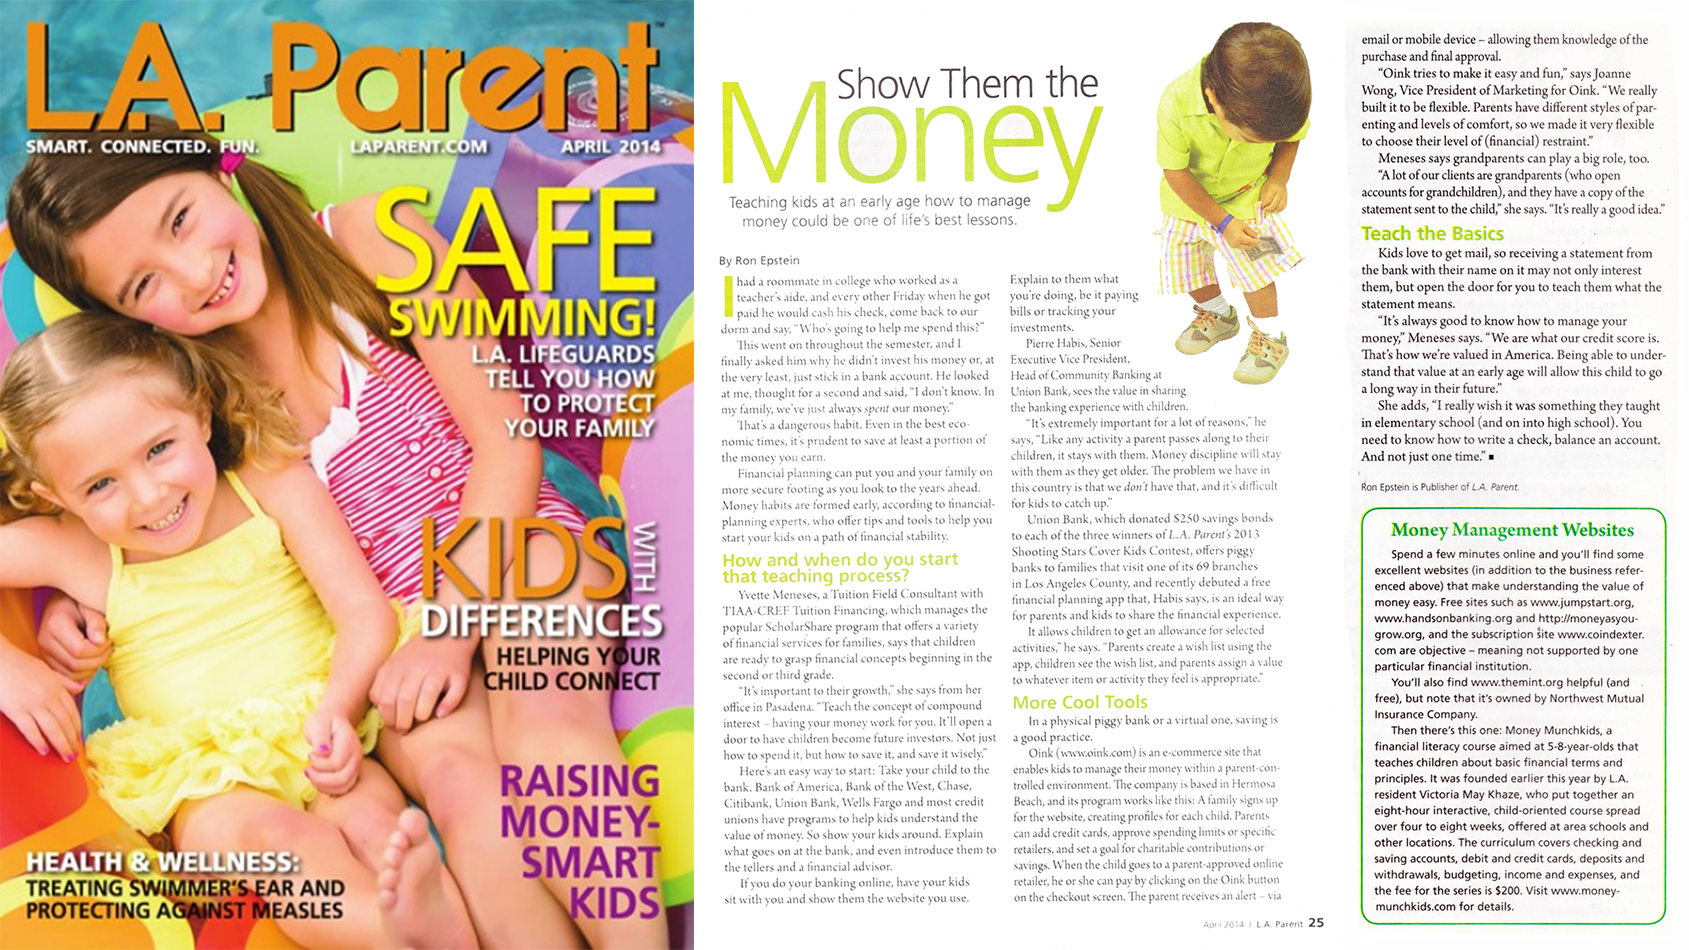 money munchkids in LA parent magazine April financial education month issue